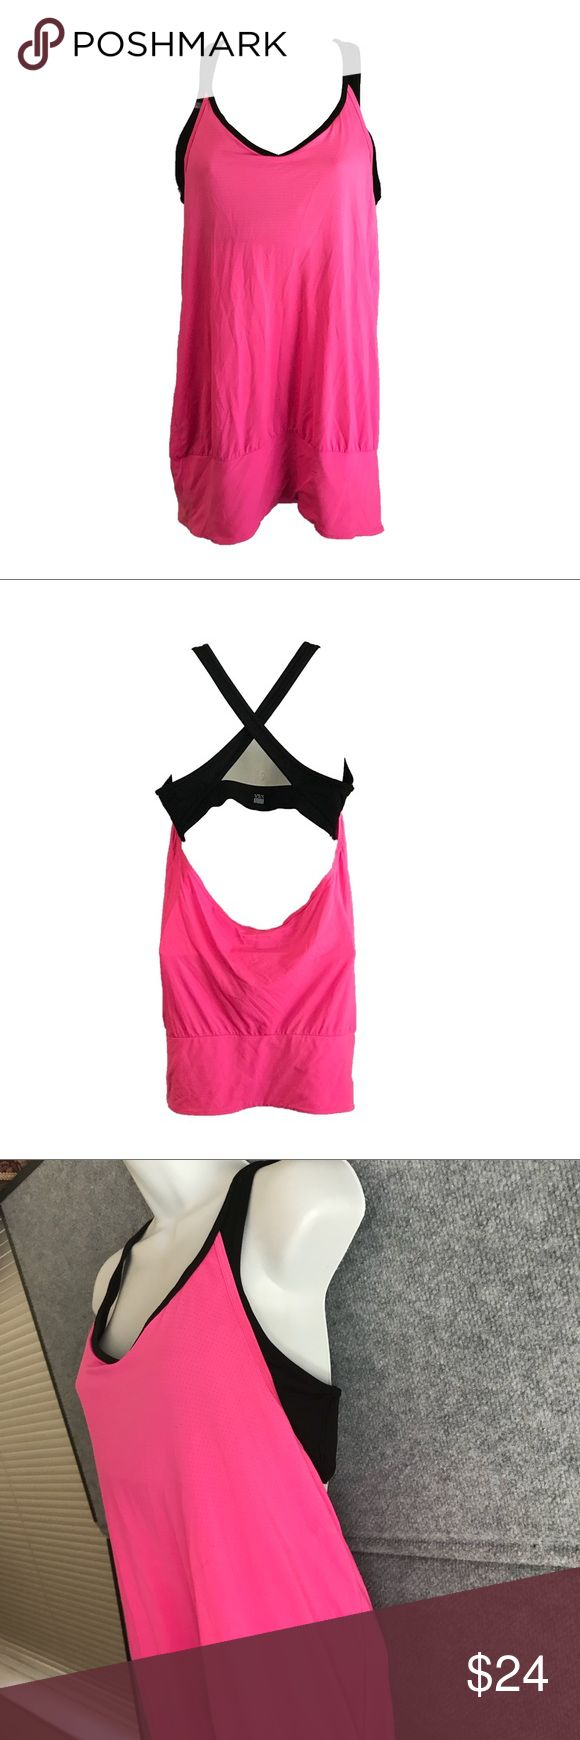 Victoria Secret Sport VSX Workout Active shirt M Victoria Secret Sport VSX Workout Active shirt M  Black Cross back bra with plenty of support with Pink Slouchy open back #37-073 Victoria's Secret Tops Muscle Tees